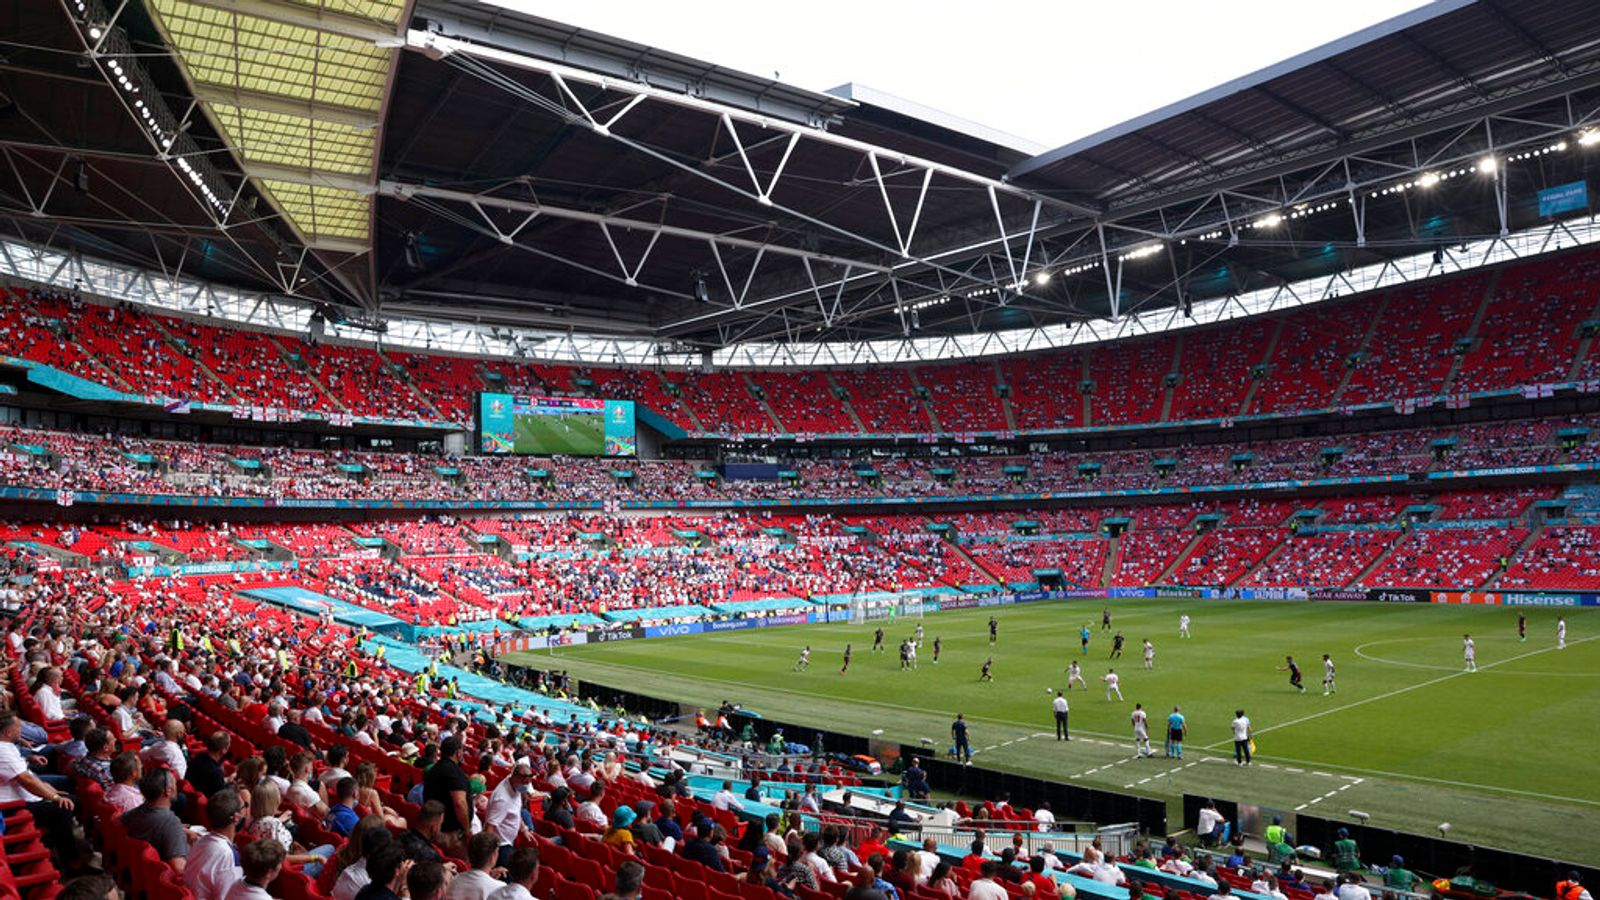 England fan in serious condition in hospital after fall from Wembley stands during Croatia game - Bóng Đá